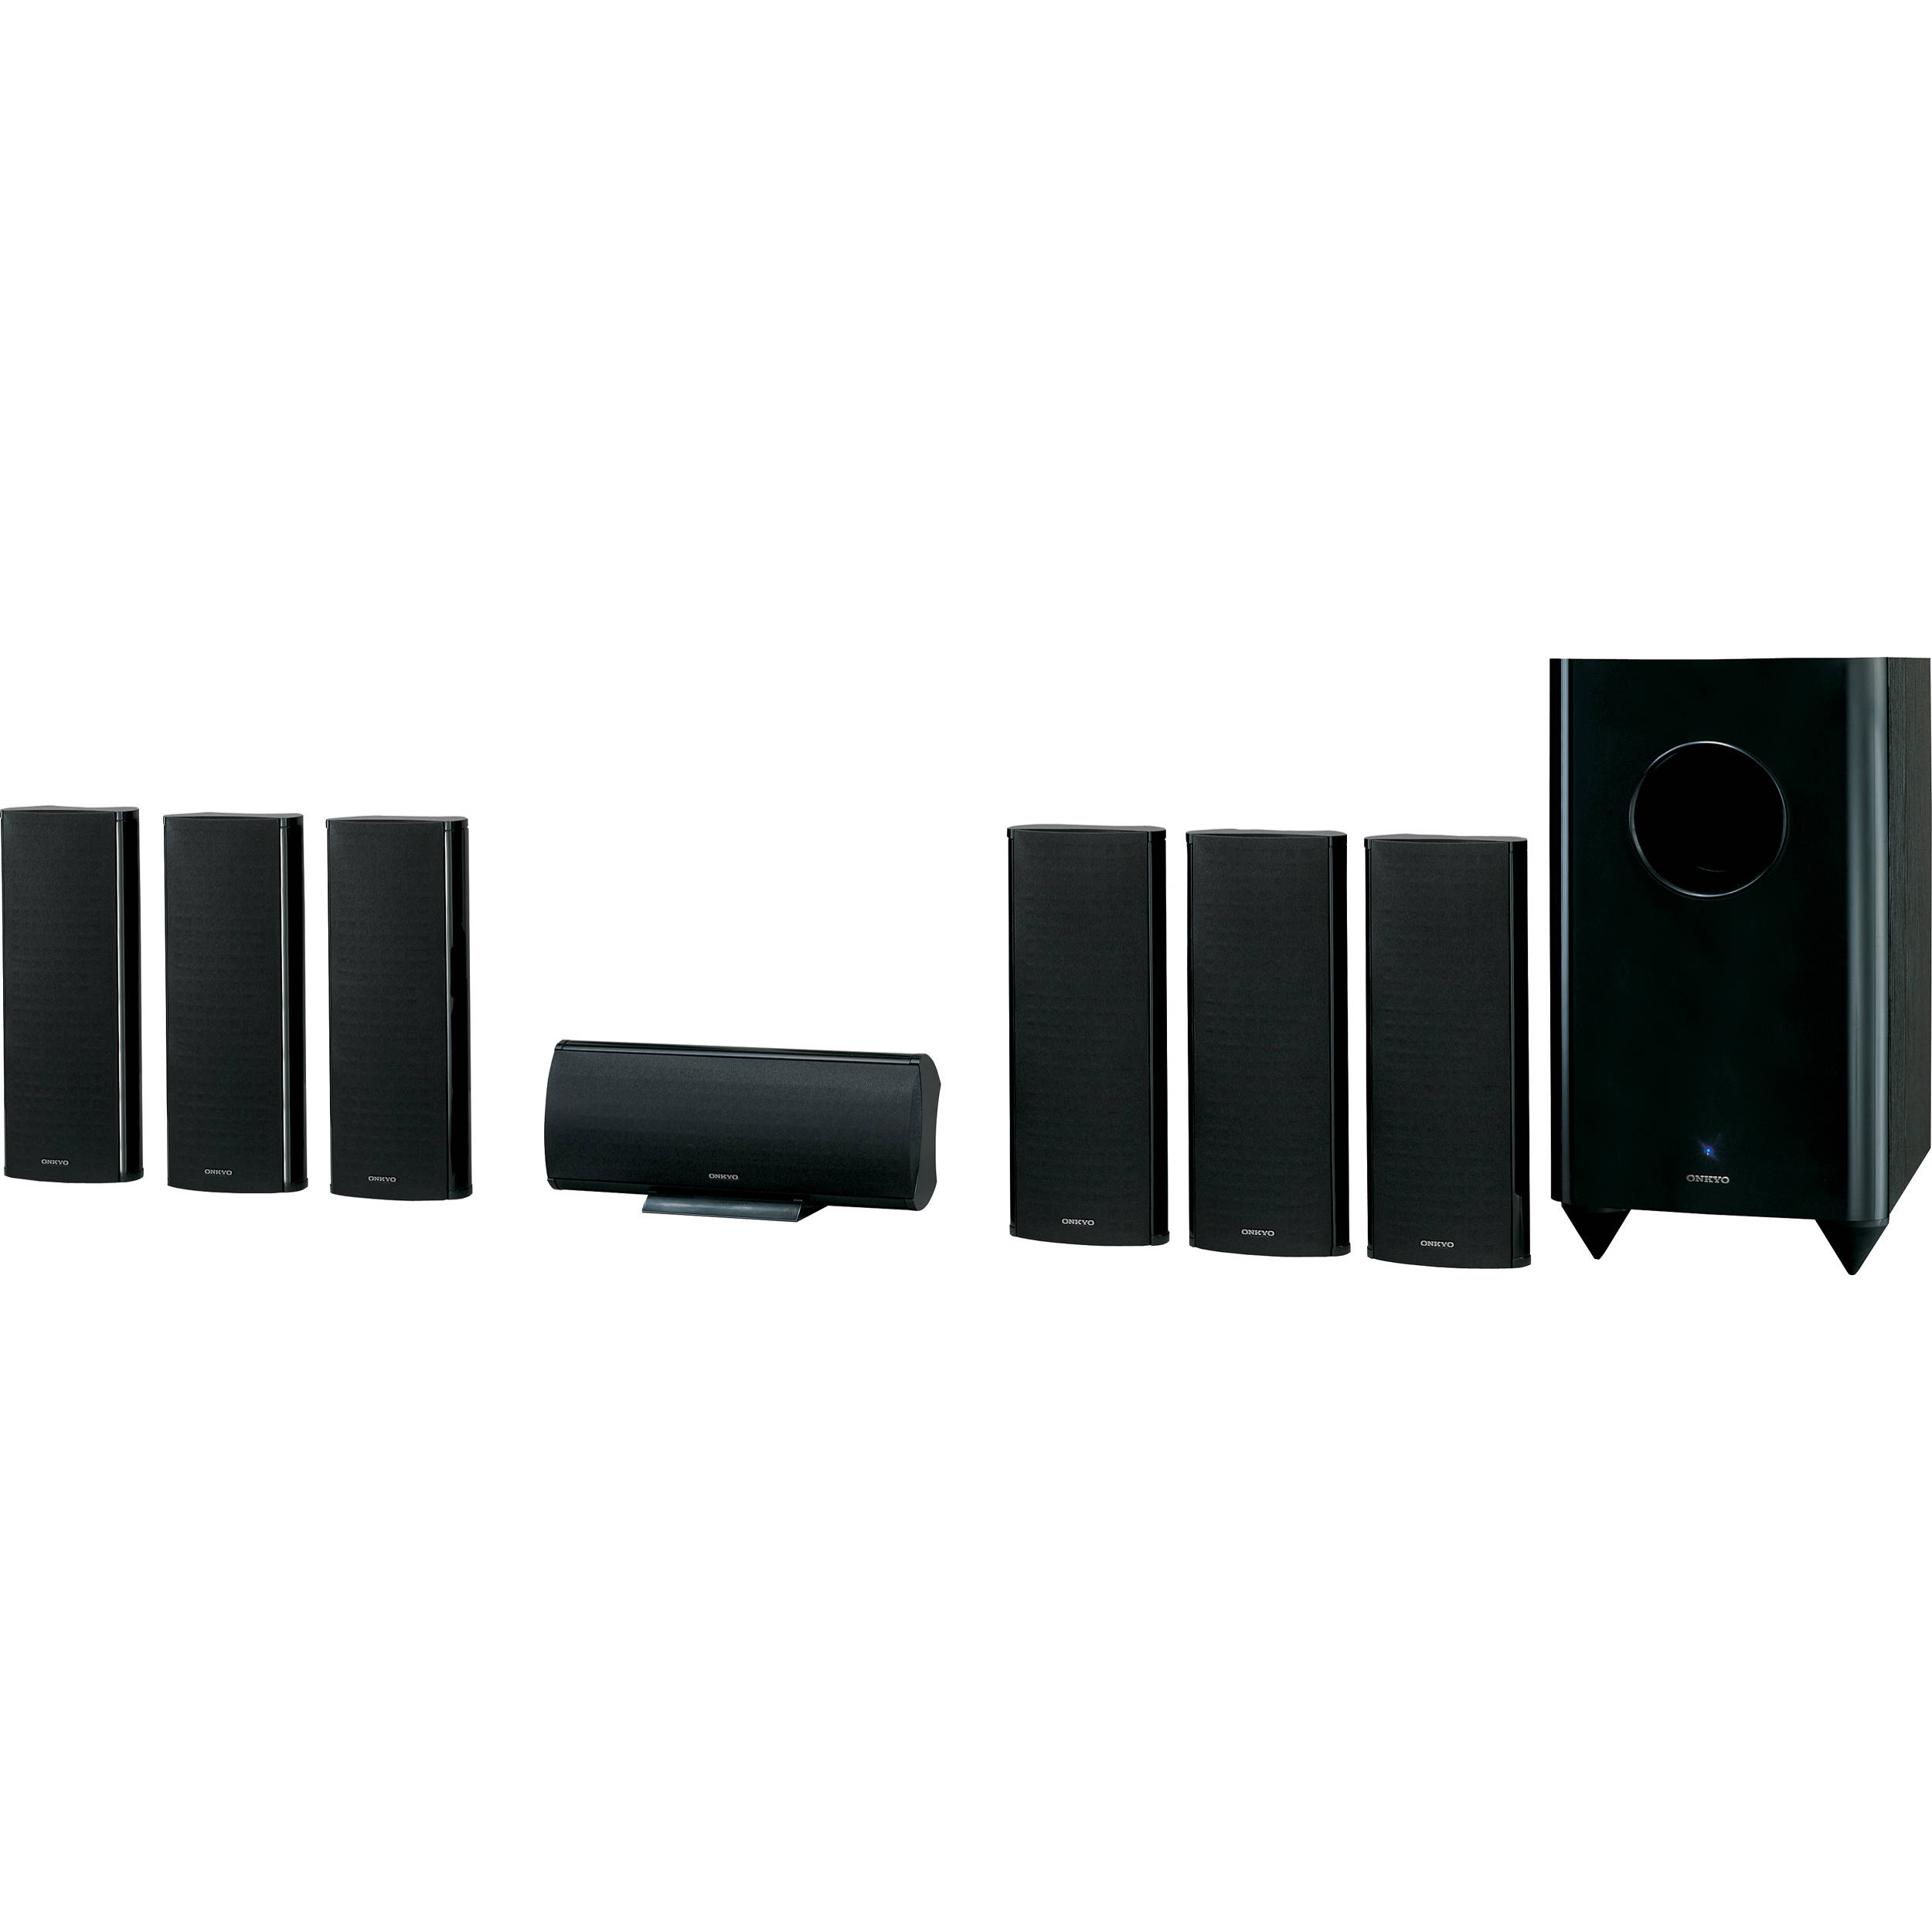 onkyo sks ht750 7 1 channel home theater speaker system. Black Bedroom Furniture Sets. Home Design Ideas